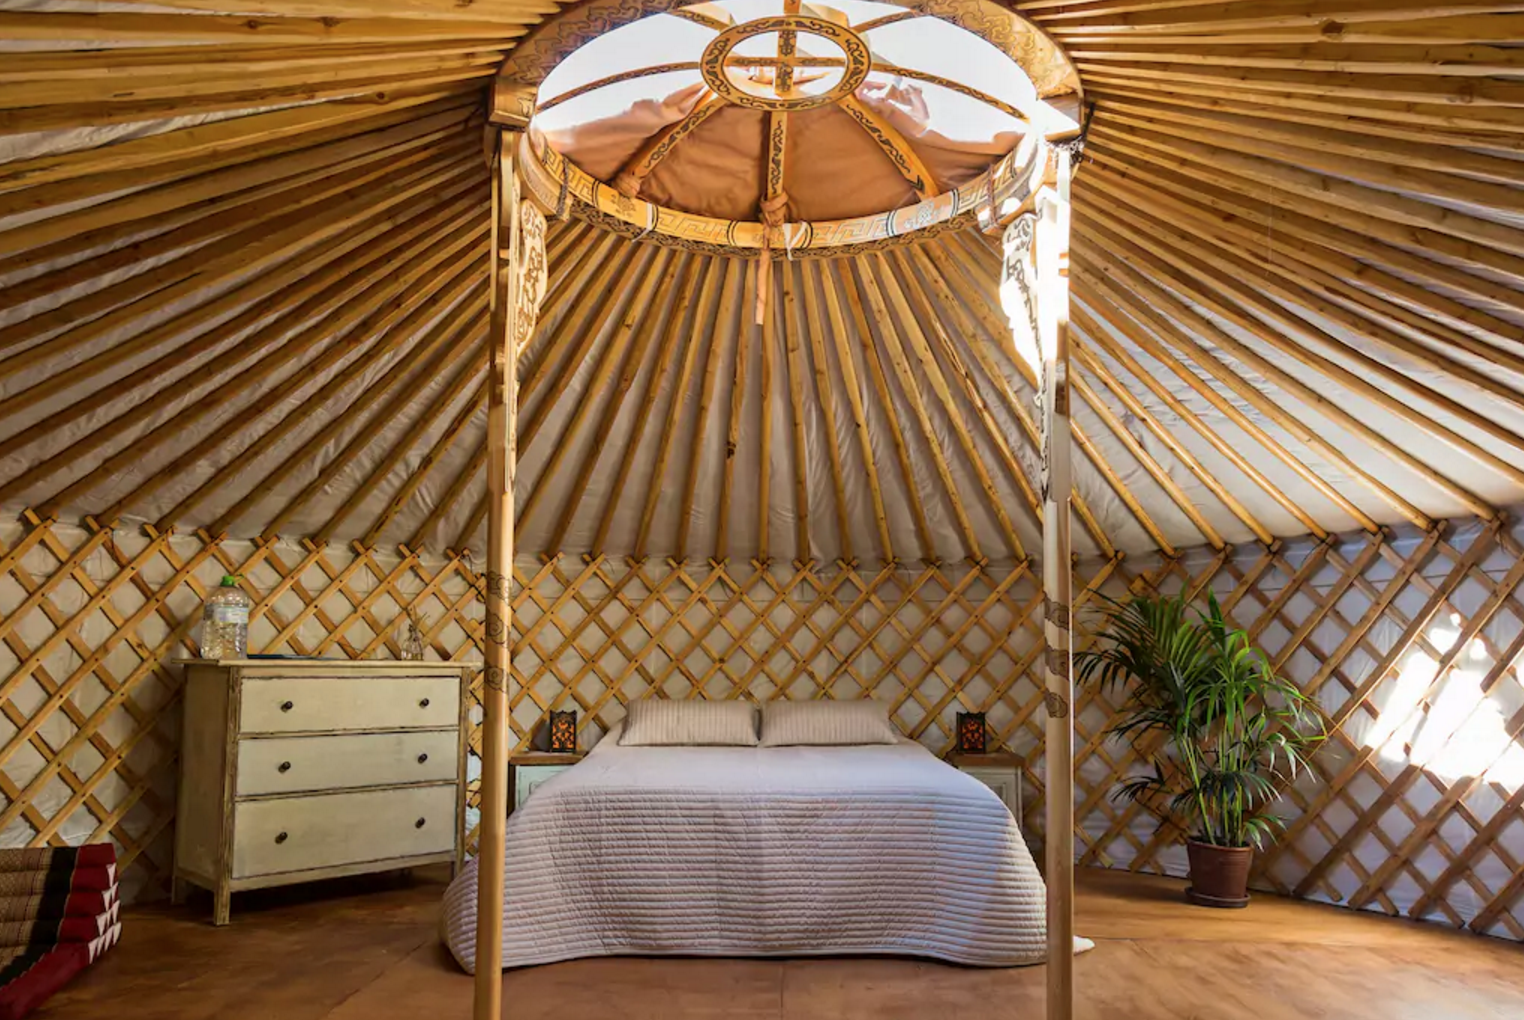 Photo 10 of 10 in 9 Yurt Vacation Rentals For the Modern Alternative Camper